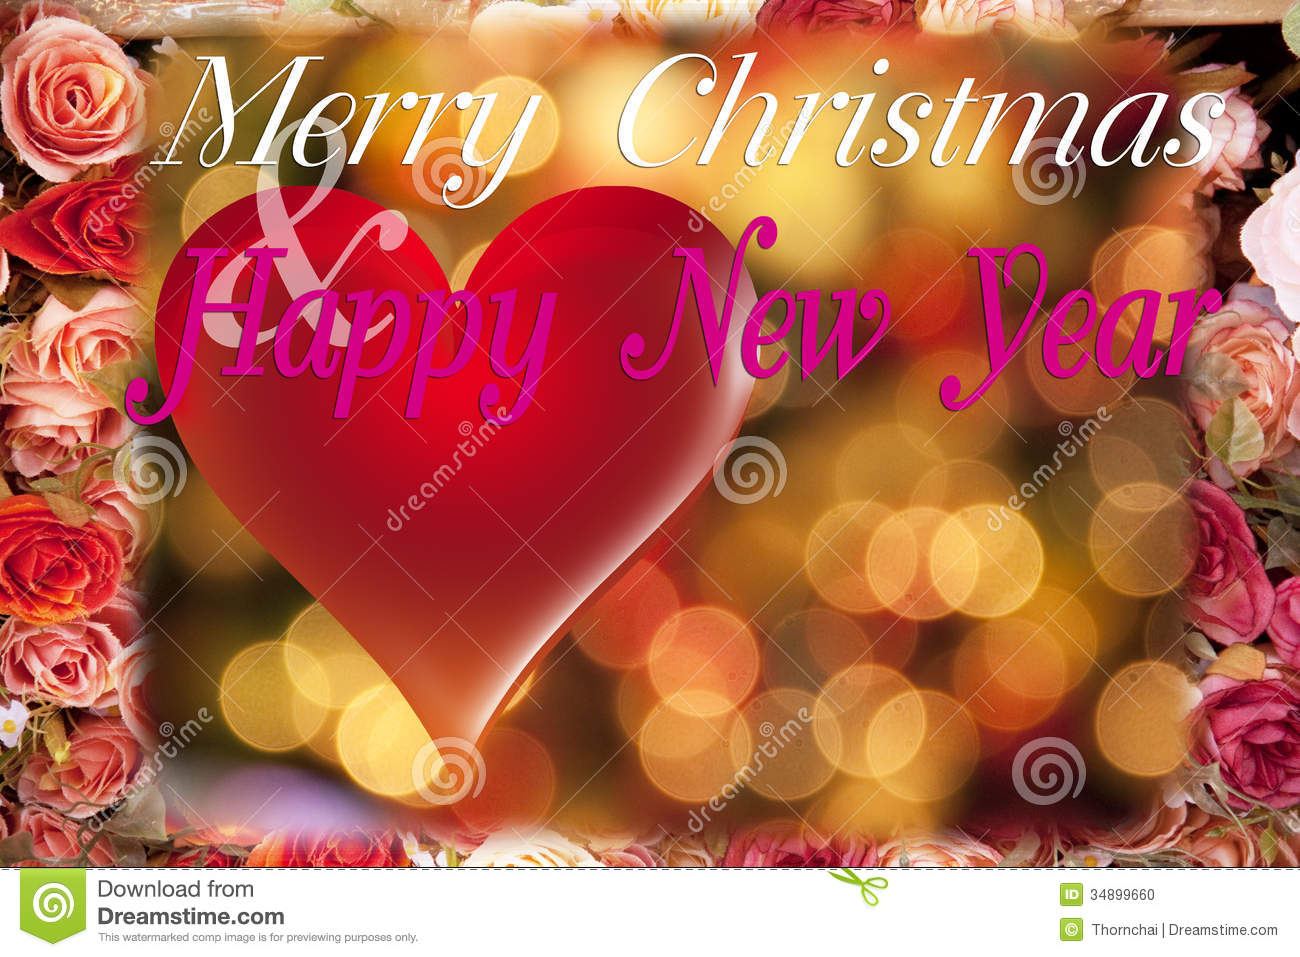 christmas and new year card with red heart and rosethis card blank area for fill wish well wording and logo by yourself